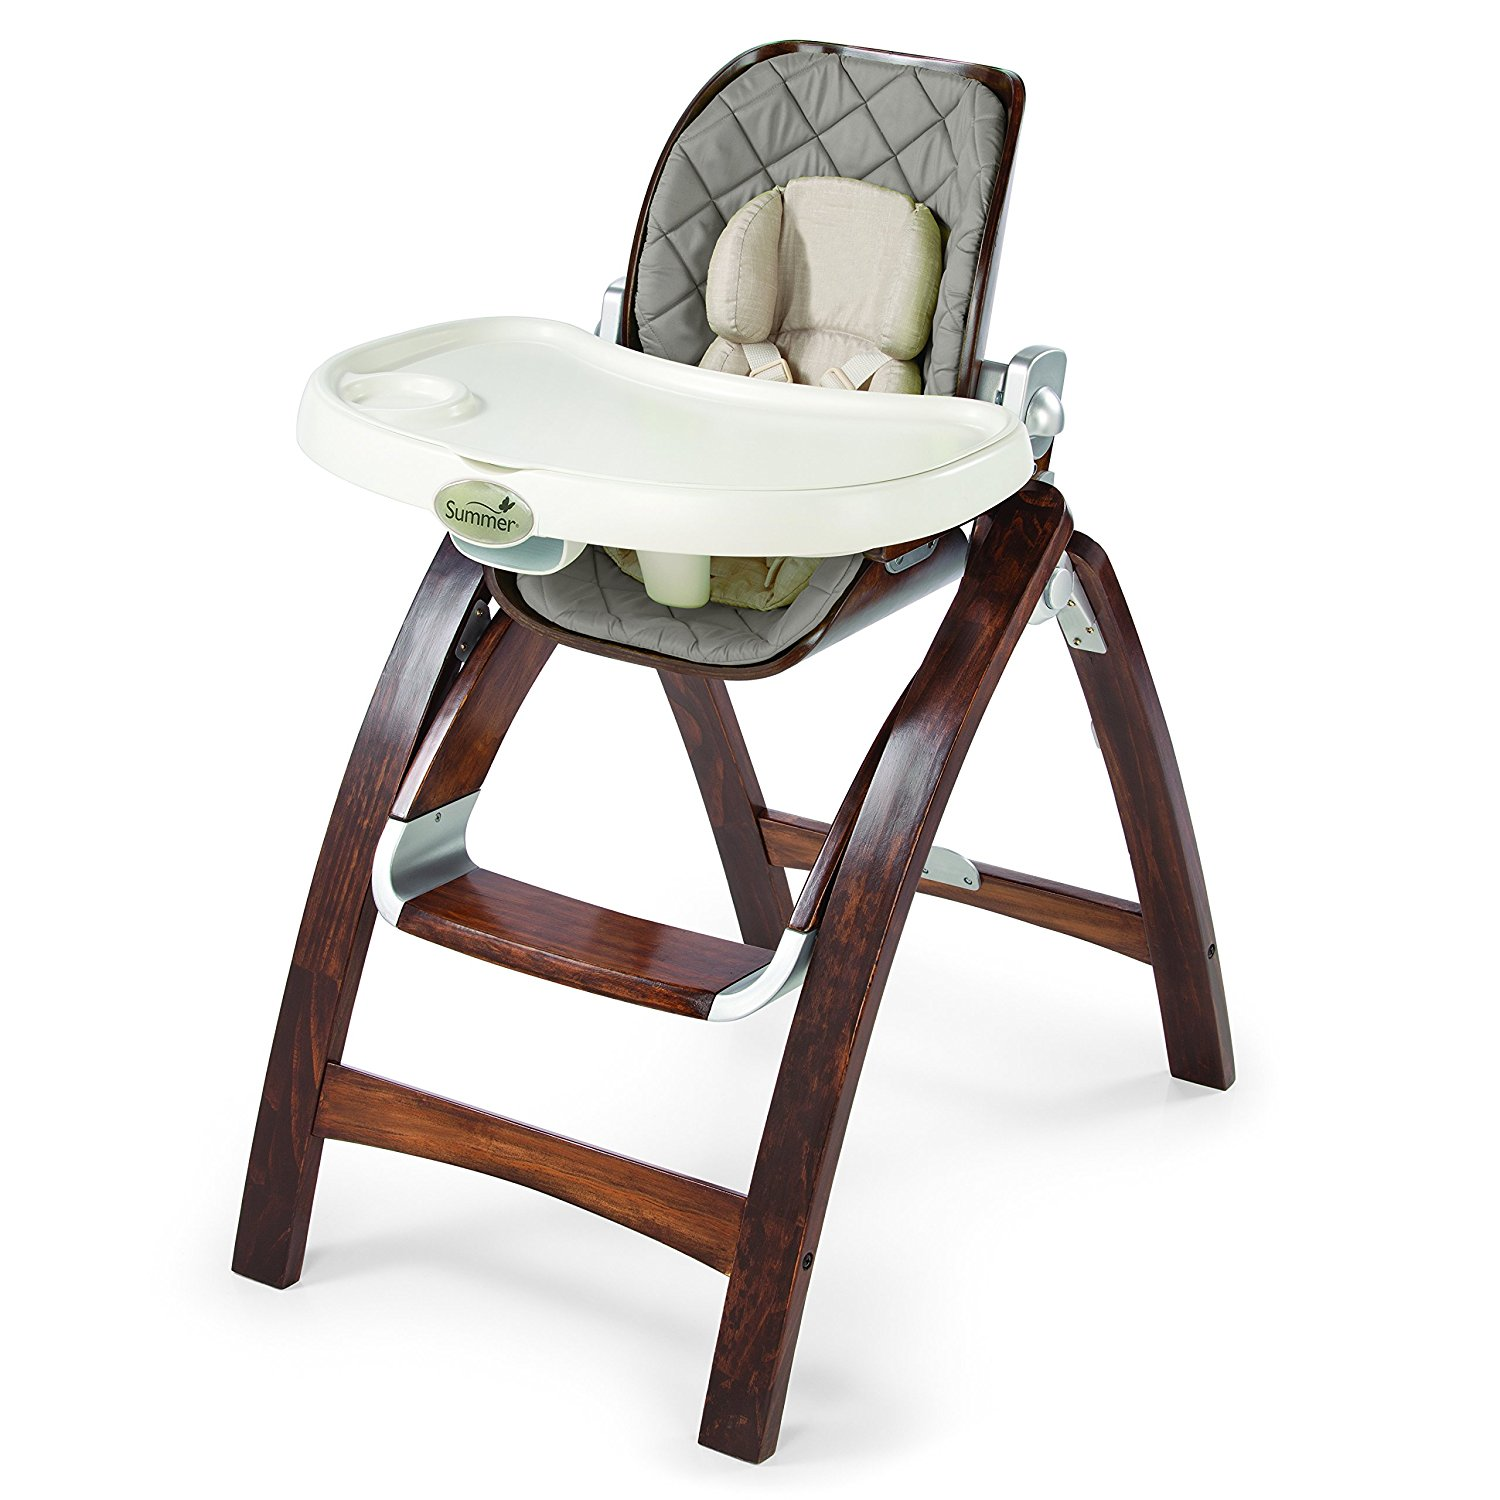 New Ideas Summer Infant High Chair Wood